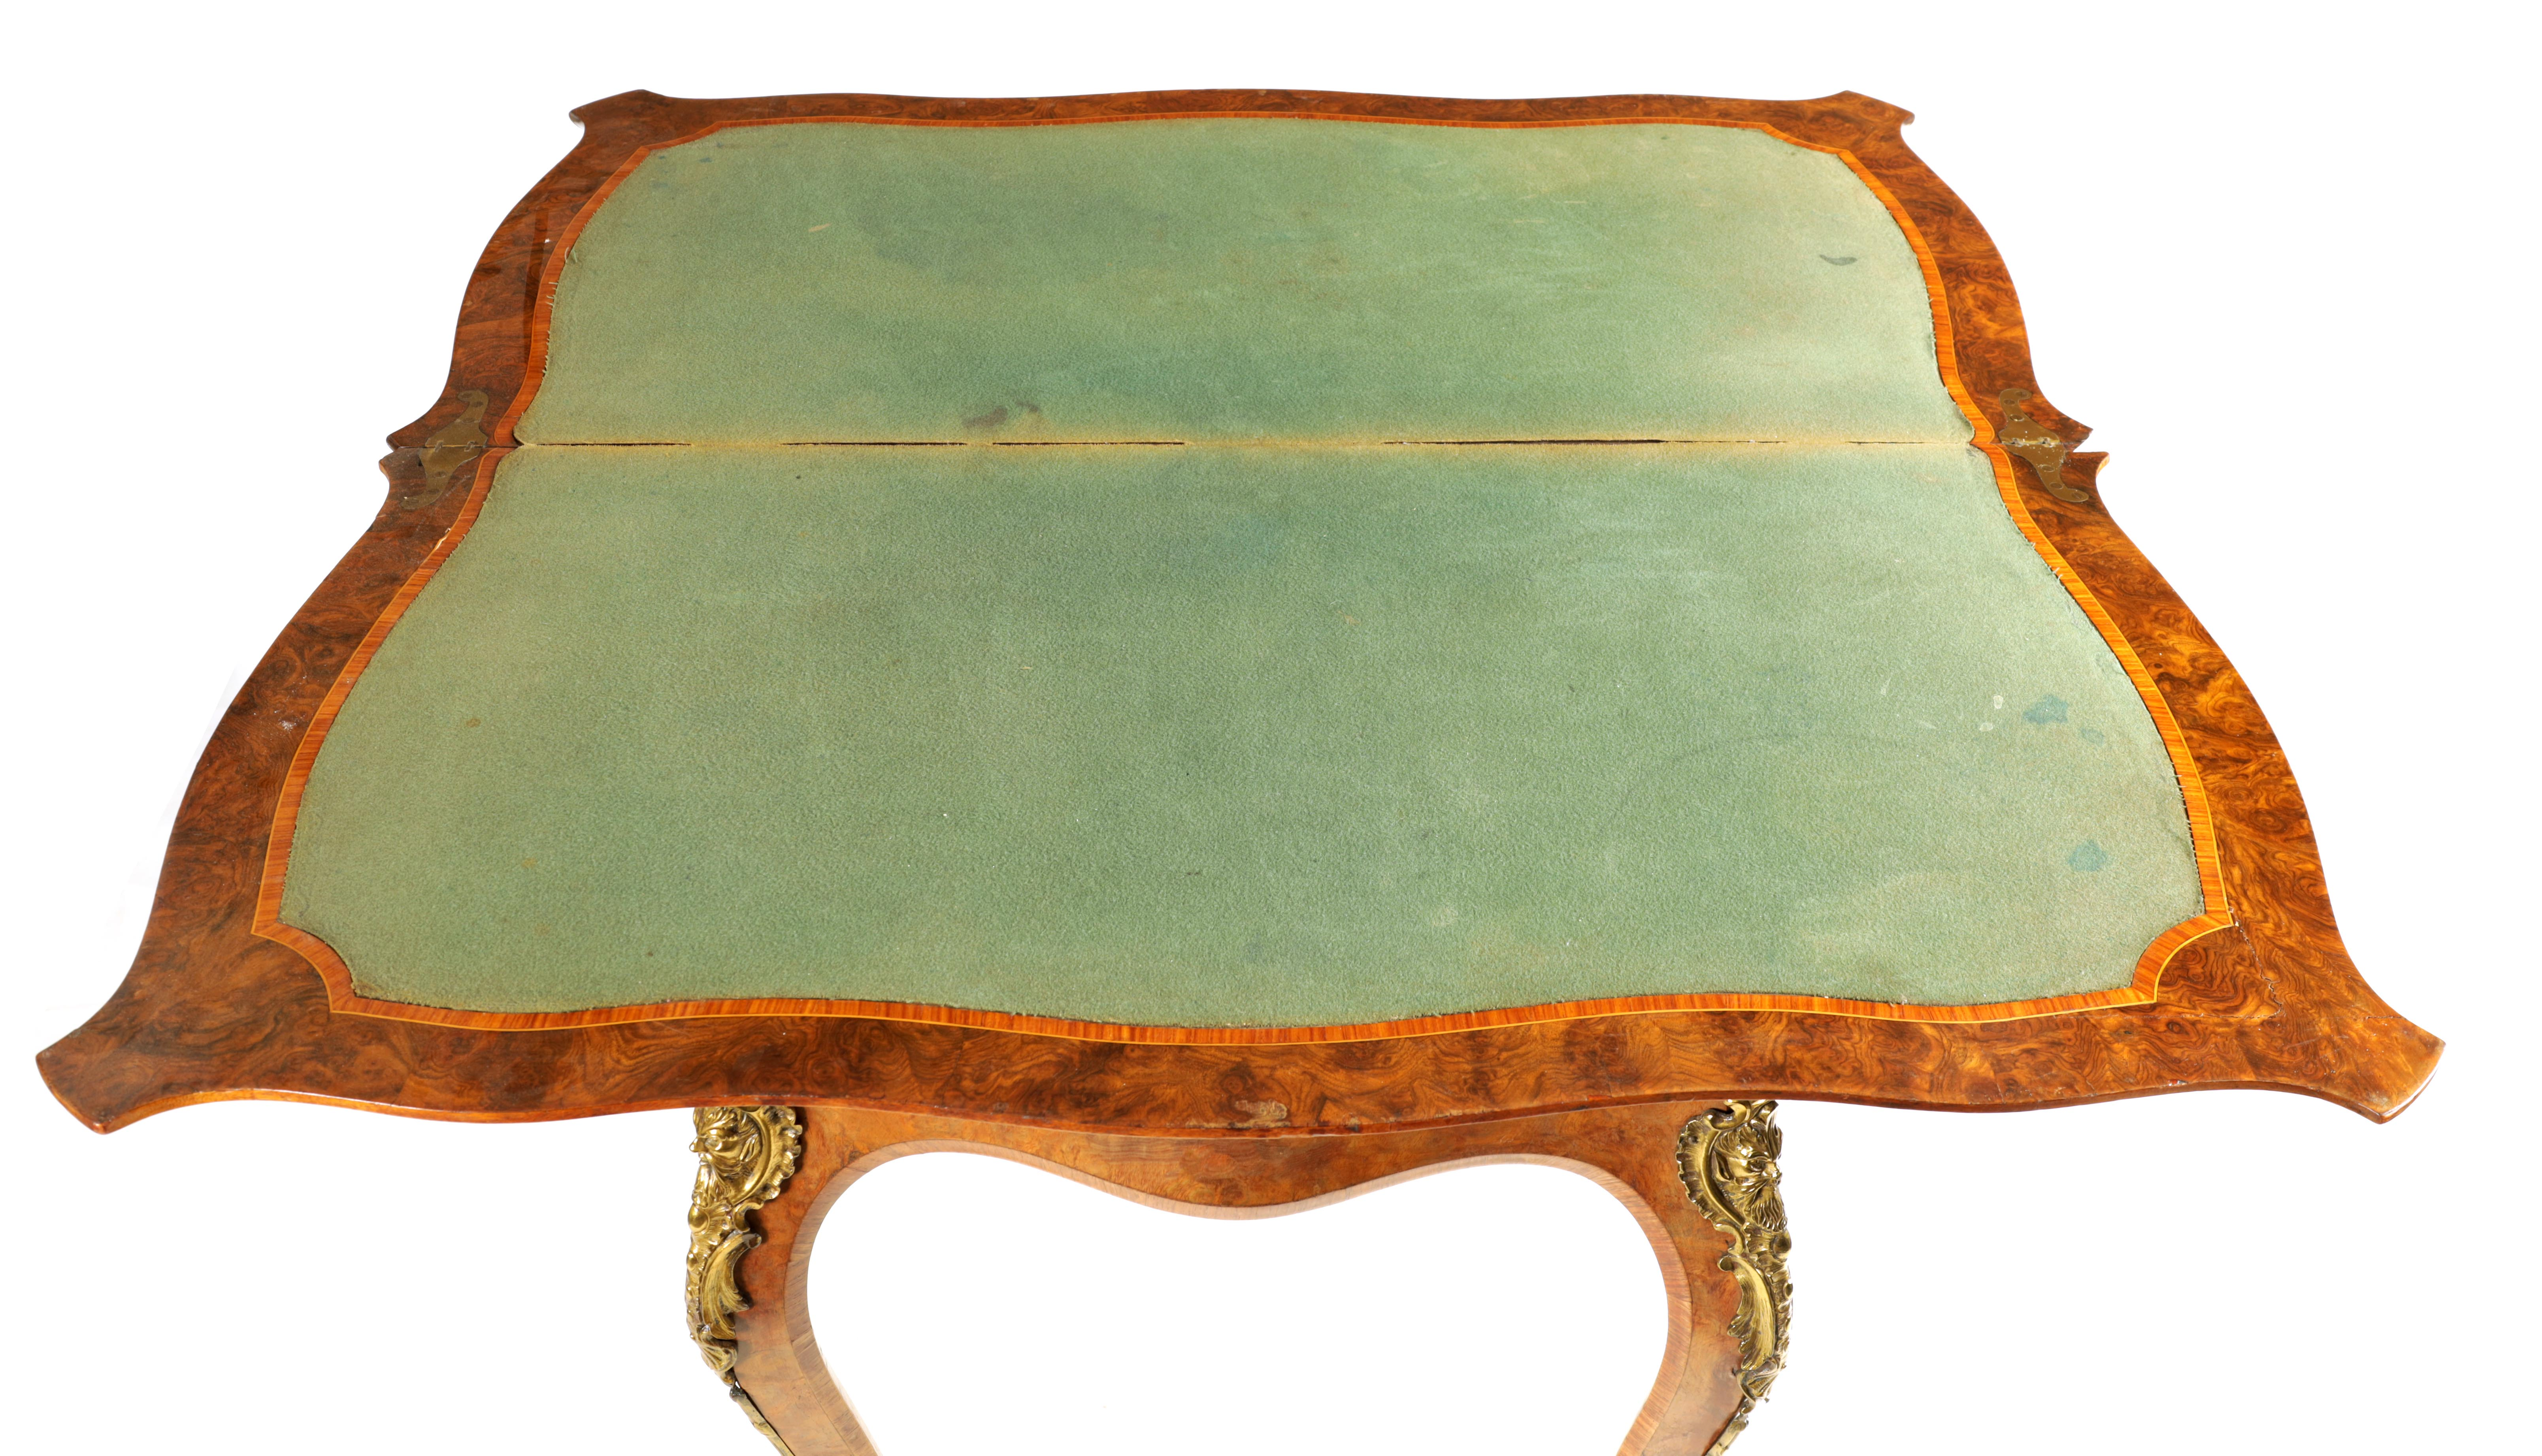 A 19TH CENTURY FRENCH KINGWOOD CROSS-BANDED BURR WALNUT SERPENTINE CARD TABLE with ormolu mounts and - Image 7 of 13